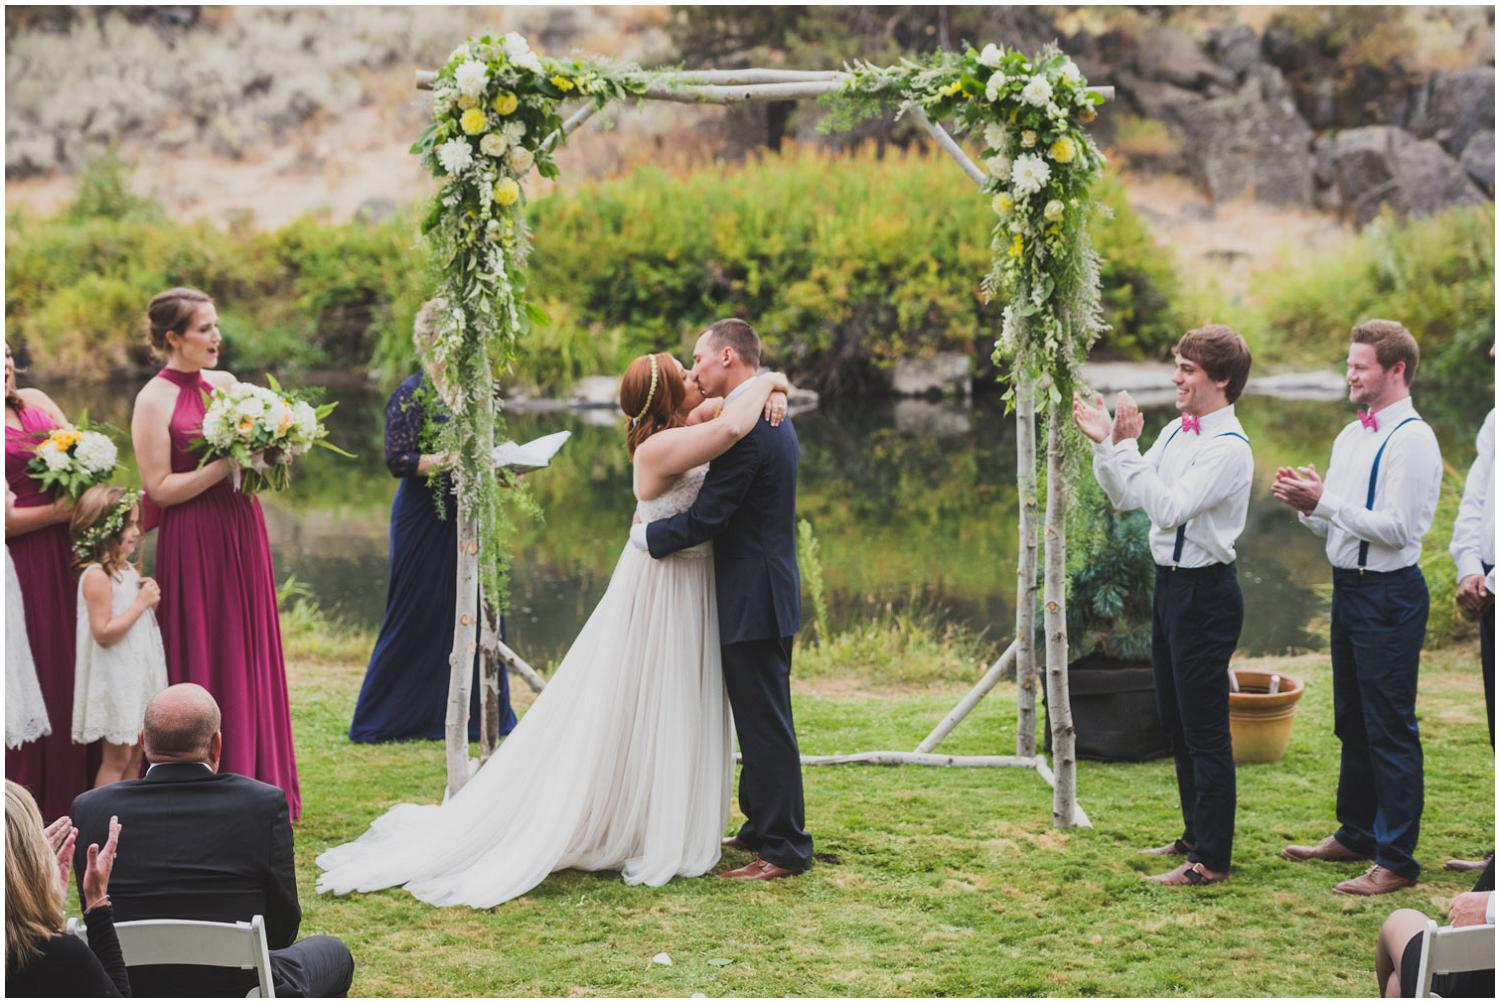 Yay! Bride and groom seal their wedding ceremony with a kiss